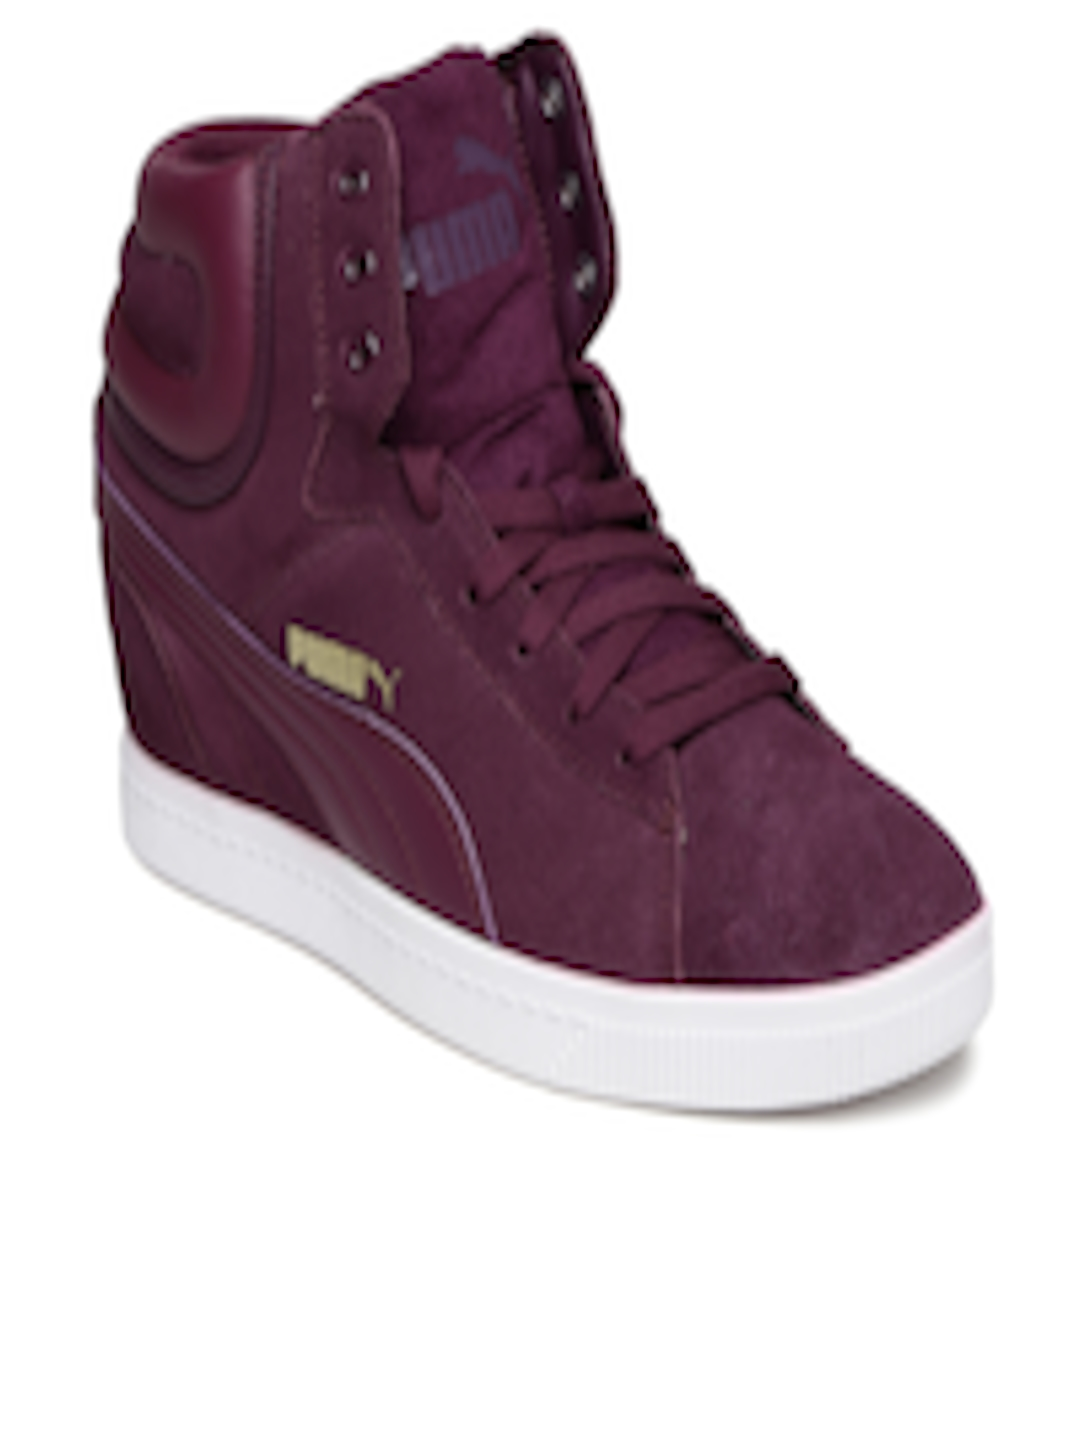 9cc243b7a99 Buy Puma Women Purple Vikky Wedge Suede Sneakers - Casual Shoes for Women  1089974